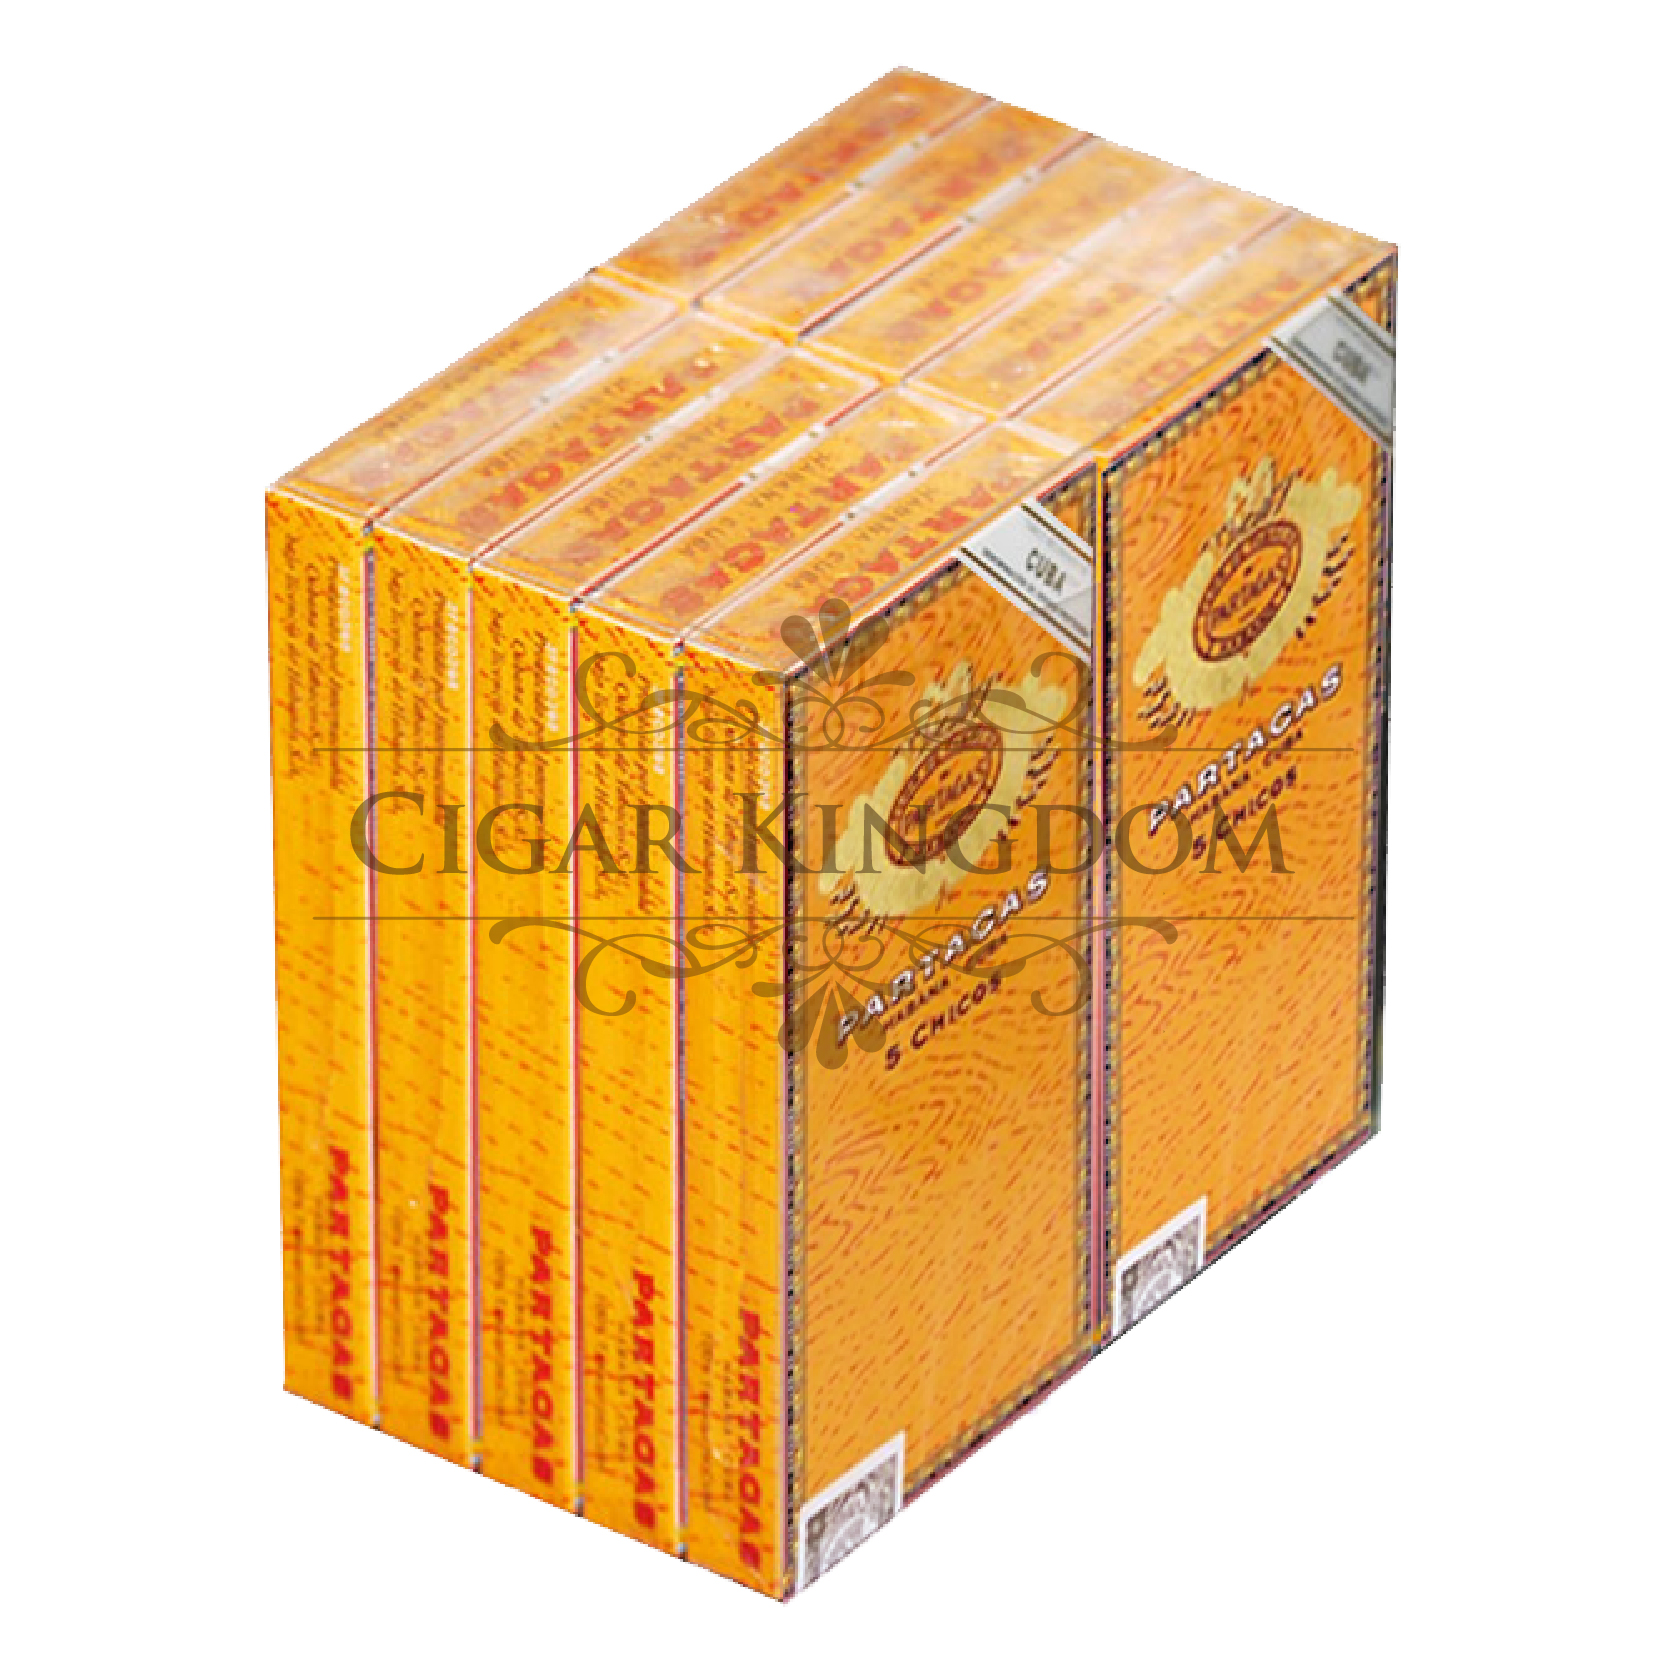 Partagas - Chico (Pack of 50s)